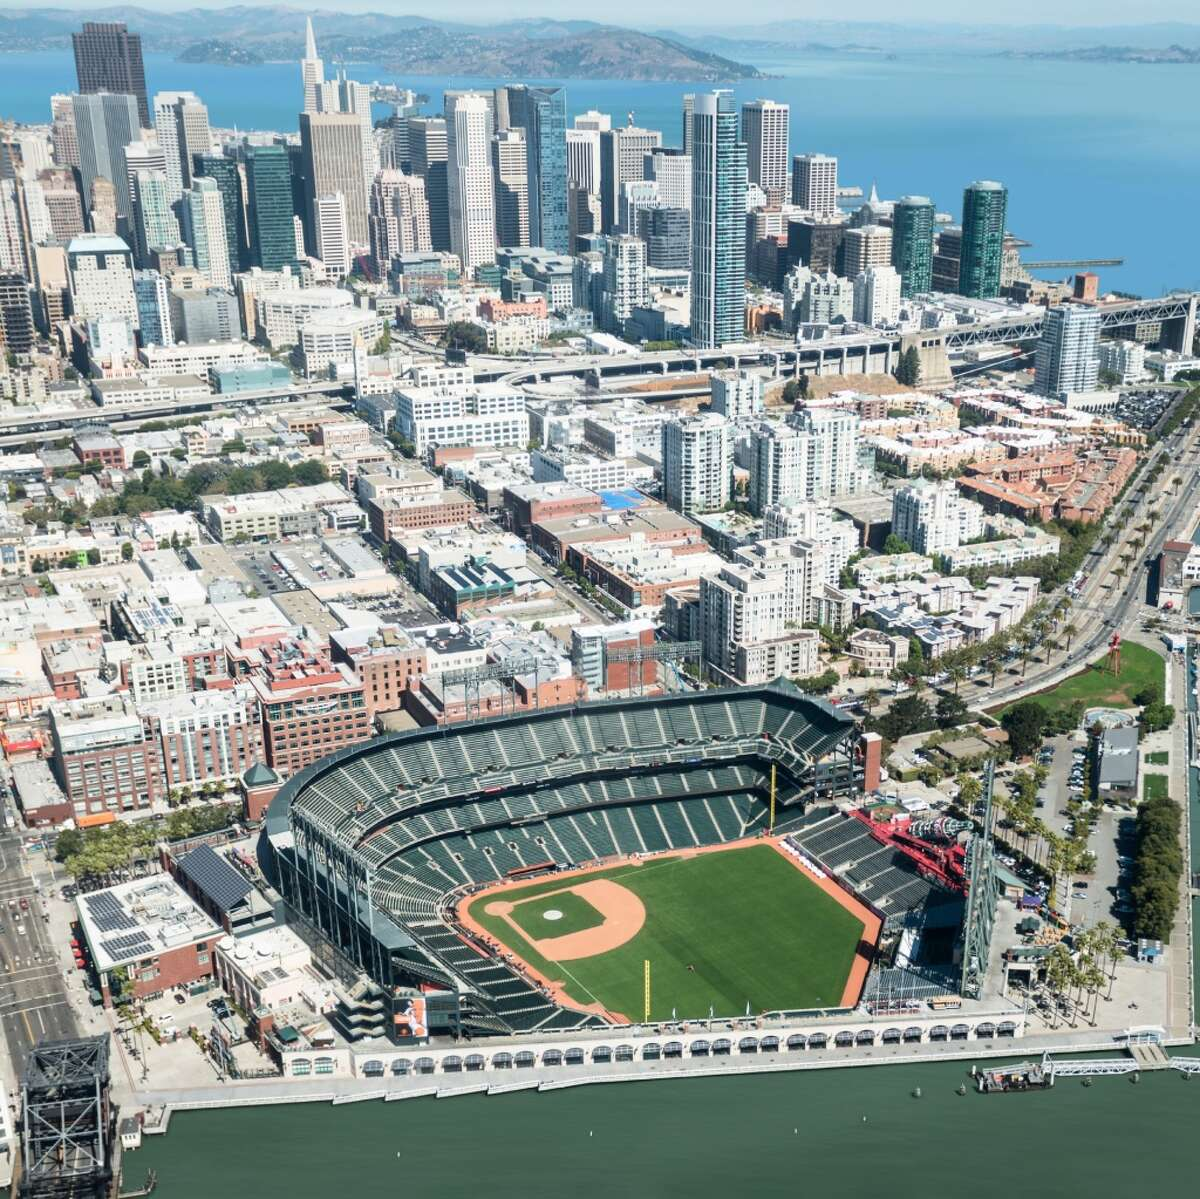 Nickolay Lamm , from self-storage search engine created these illustrations of sea level rise at AT&T Park in San Francisco.